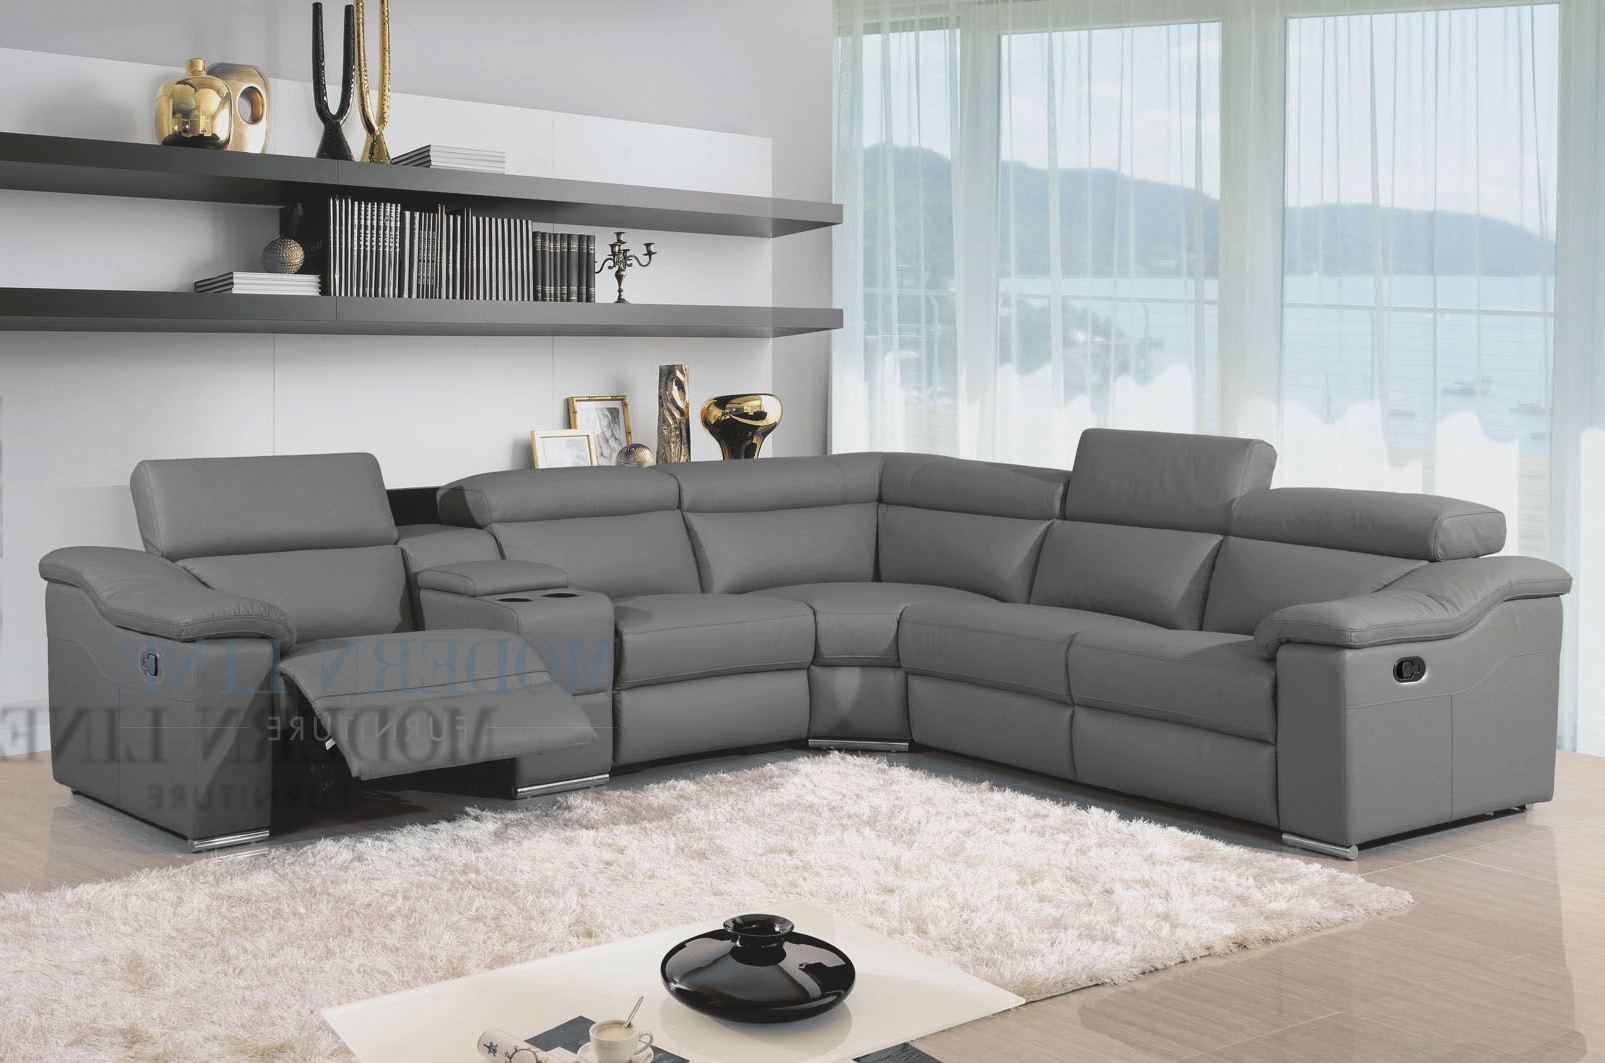 Preferred Sectional Sofas With Recliners Leather With Best Leather Sectional Sofa With Recliner 61 About Remodel Sofas (View 7 of 15)